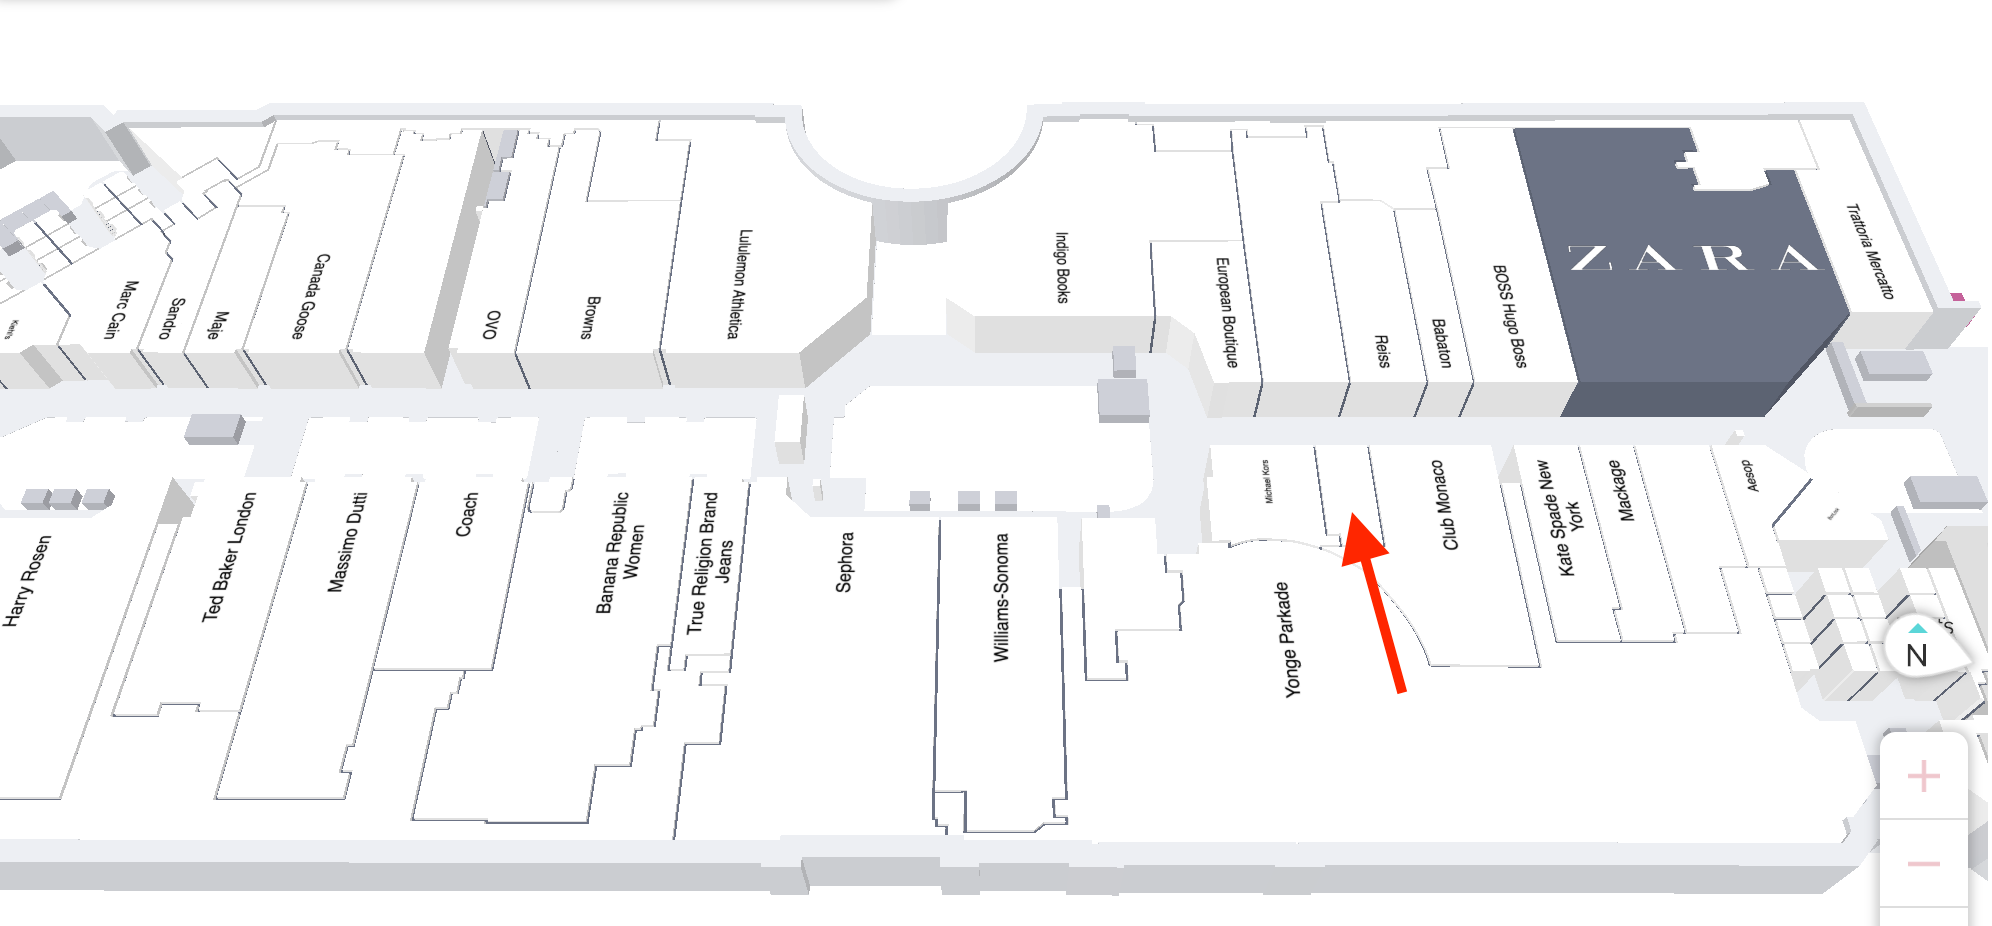 Map of third floor of CF Toronto Eaton Centre with red arrow indicating location of future Jo Malone store.